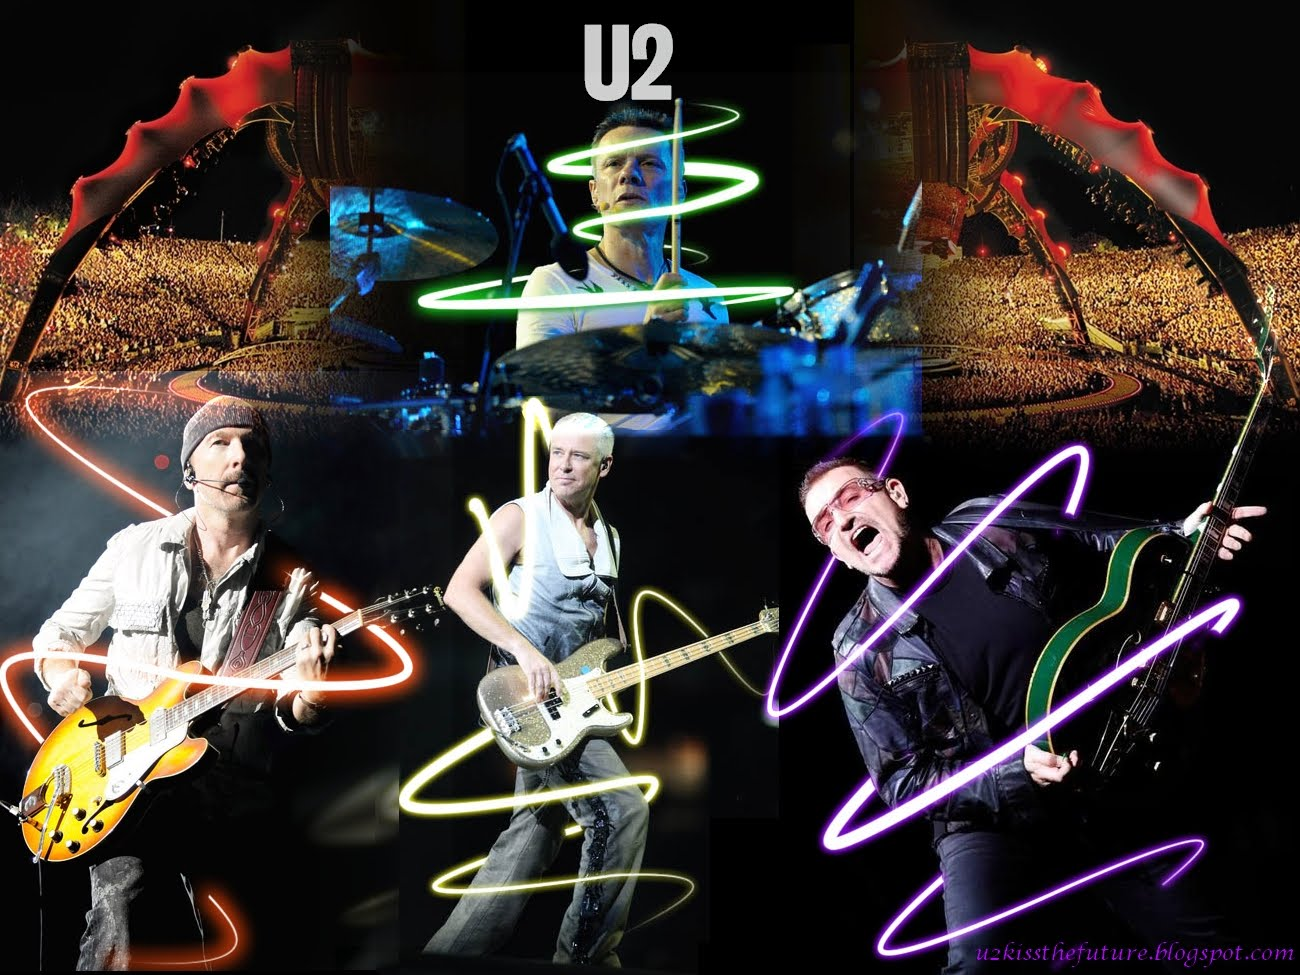 wallpaper u2 wal...U2 Desktop Wallpaper